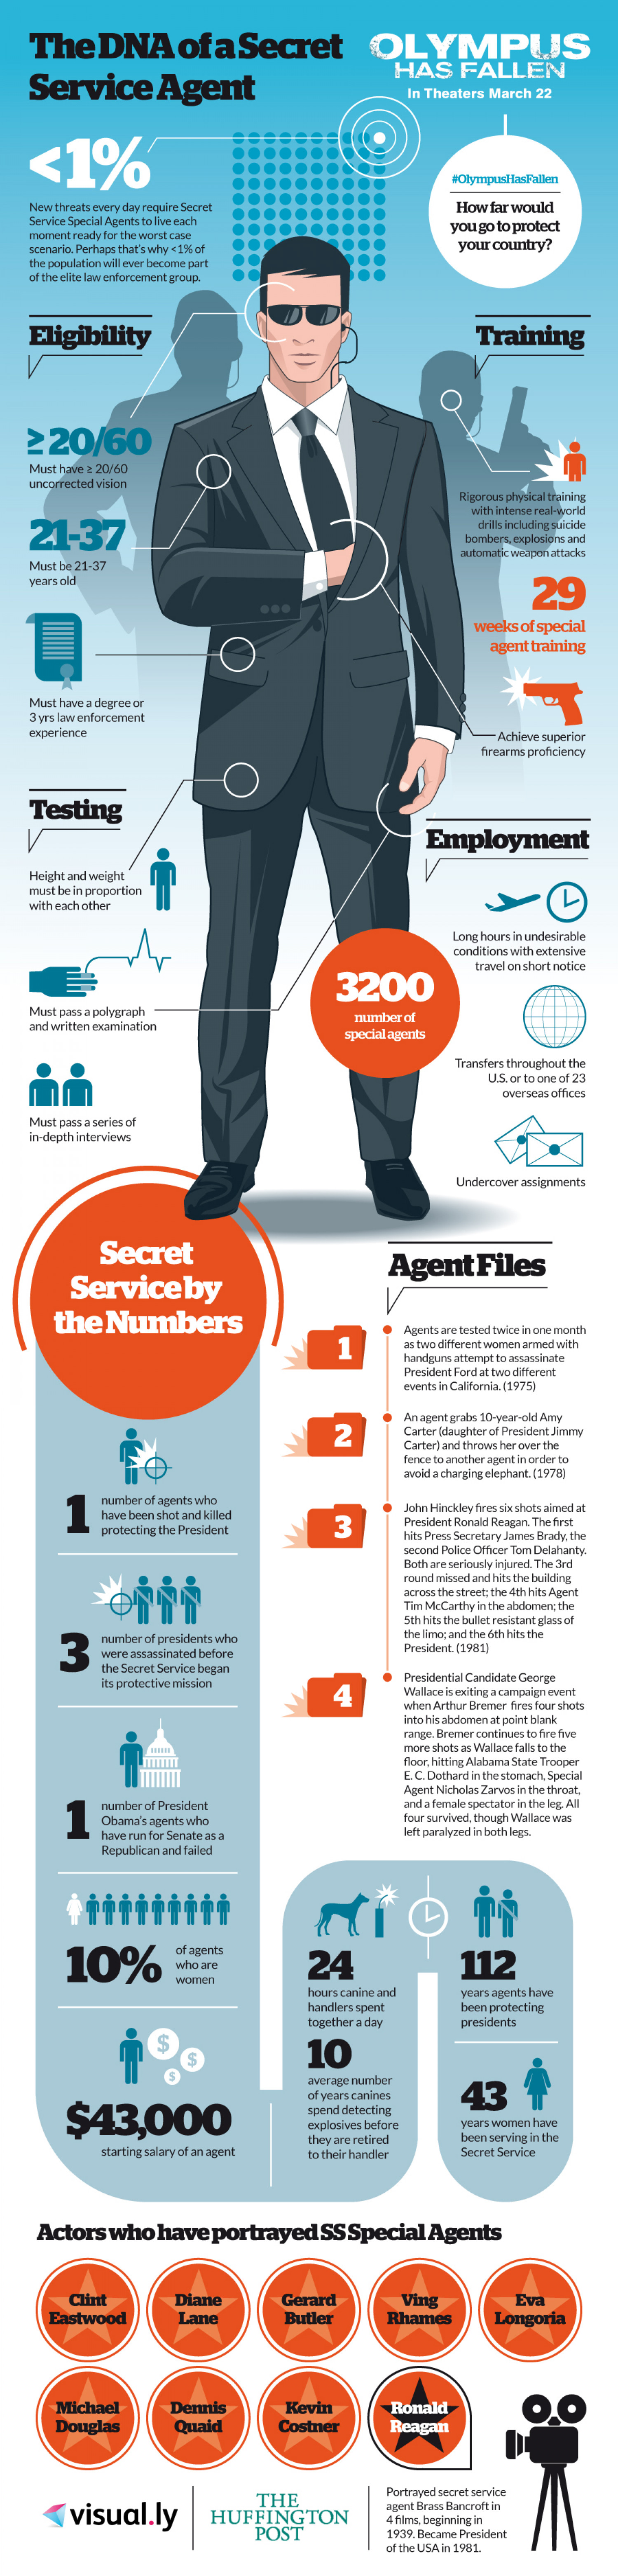 The DNA of a Secret Service Agent Infographic